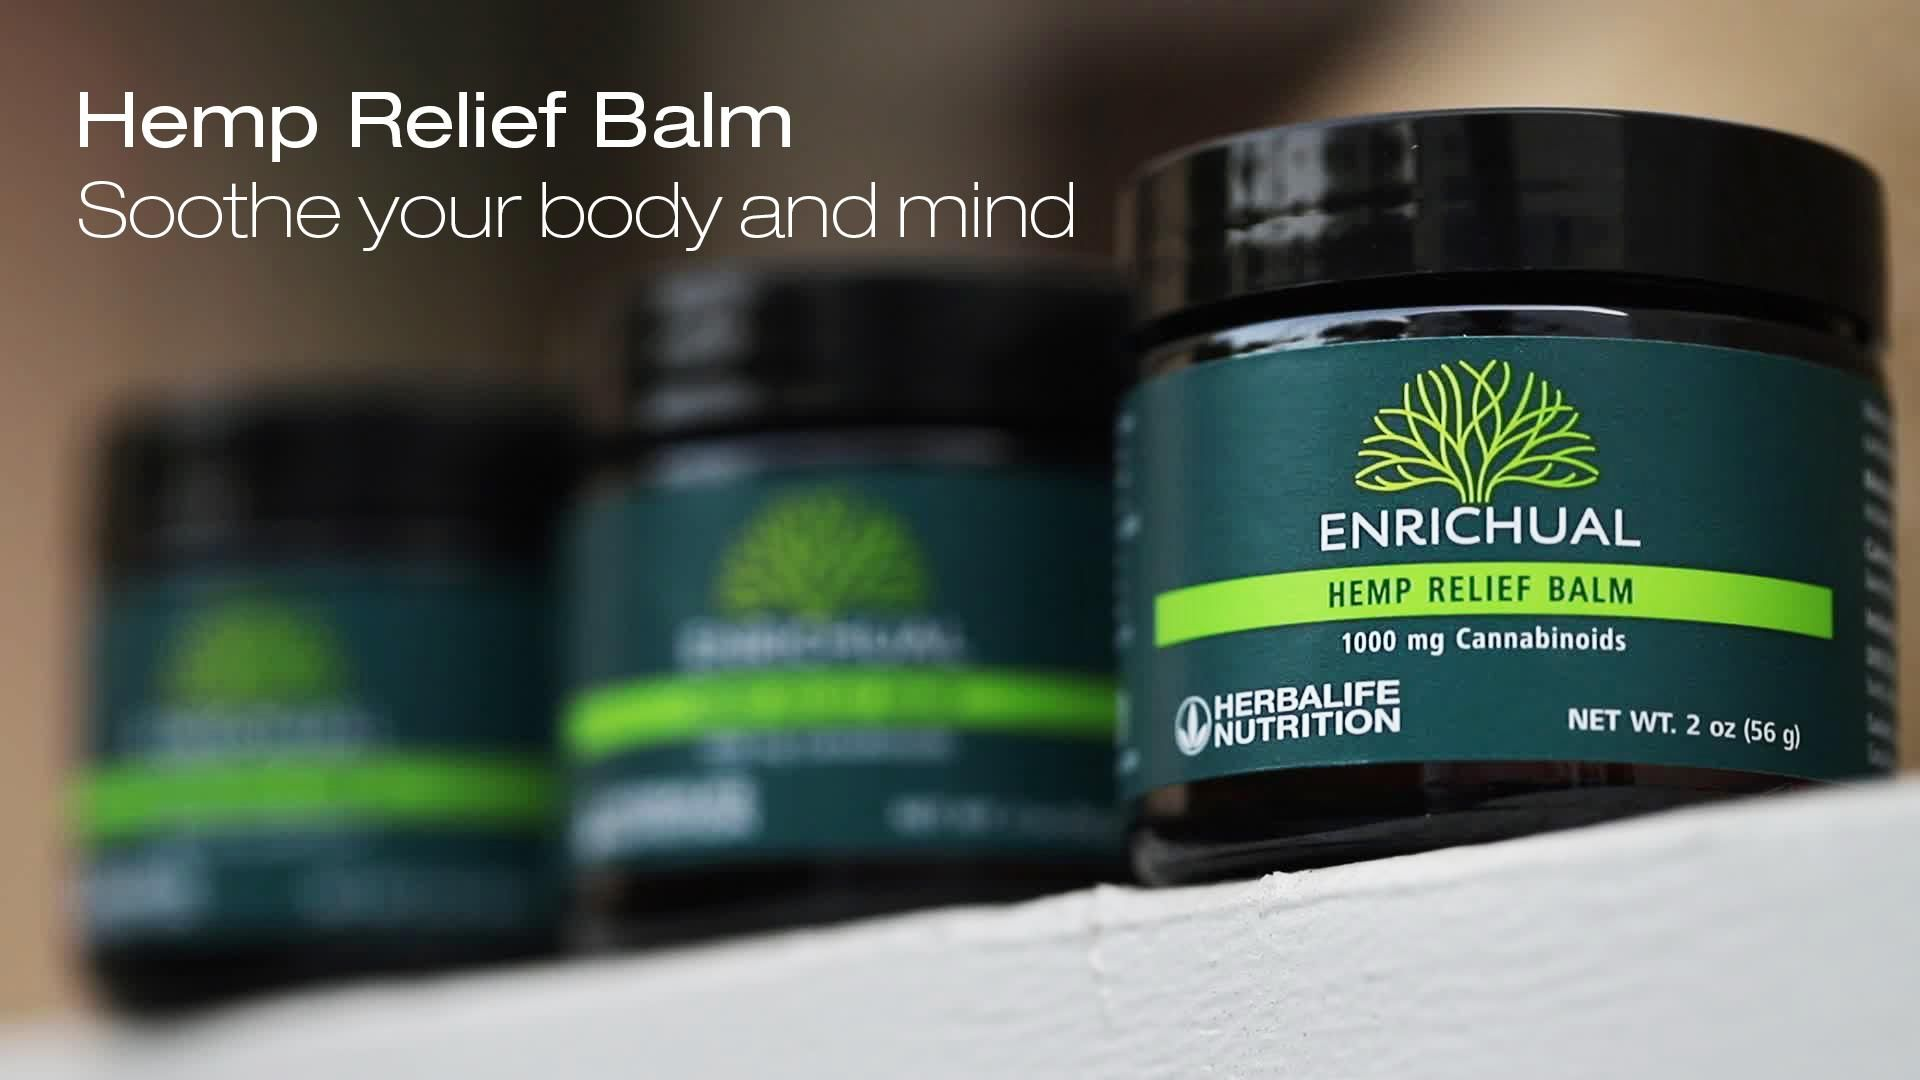 Enrichual Hemp Relief Balm: Know the Products